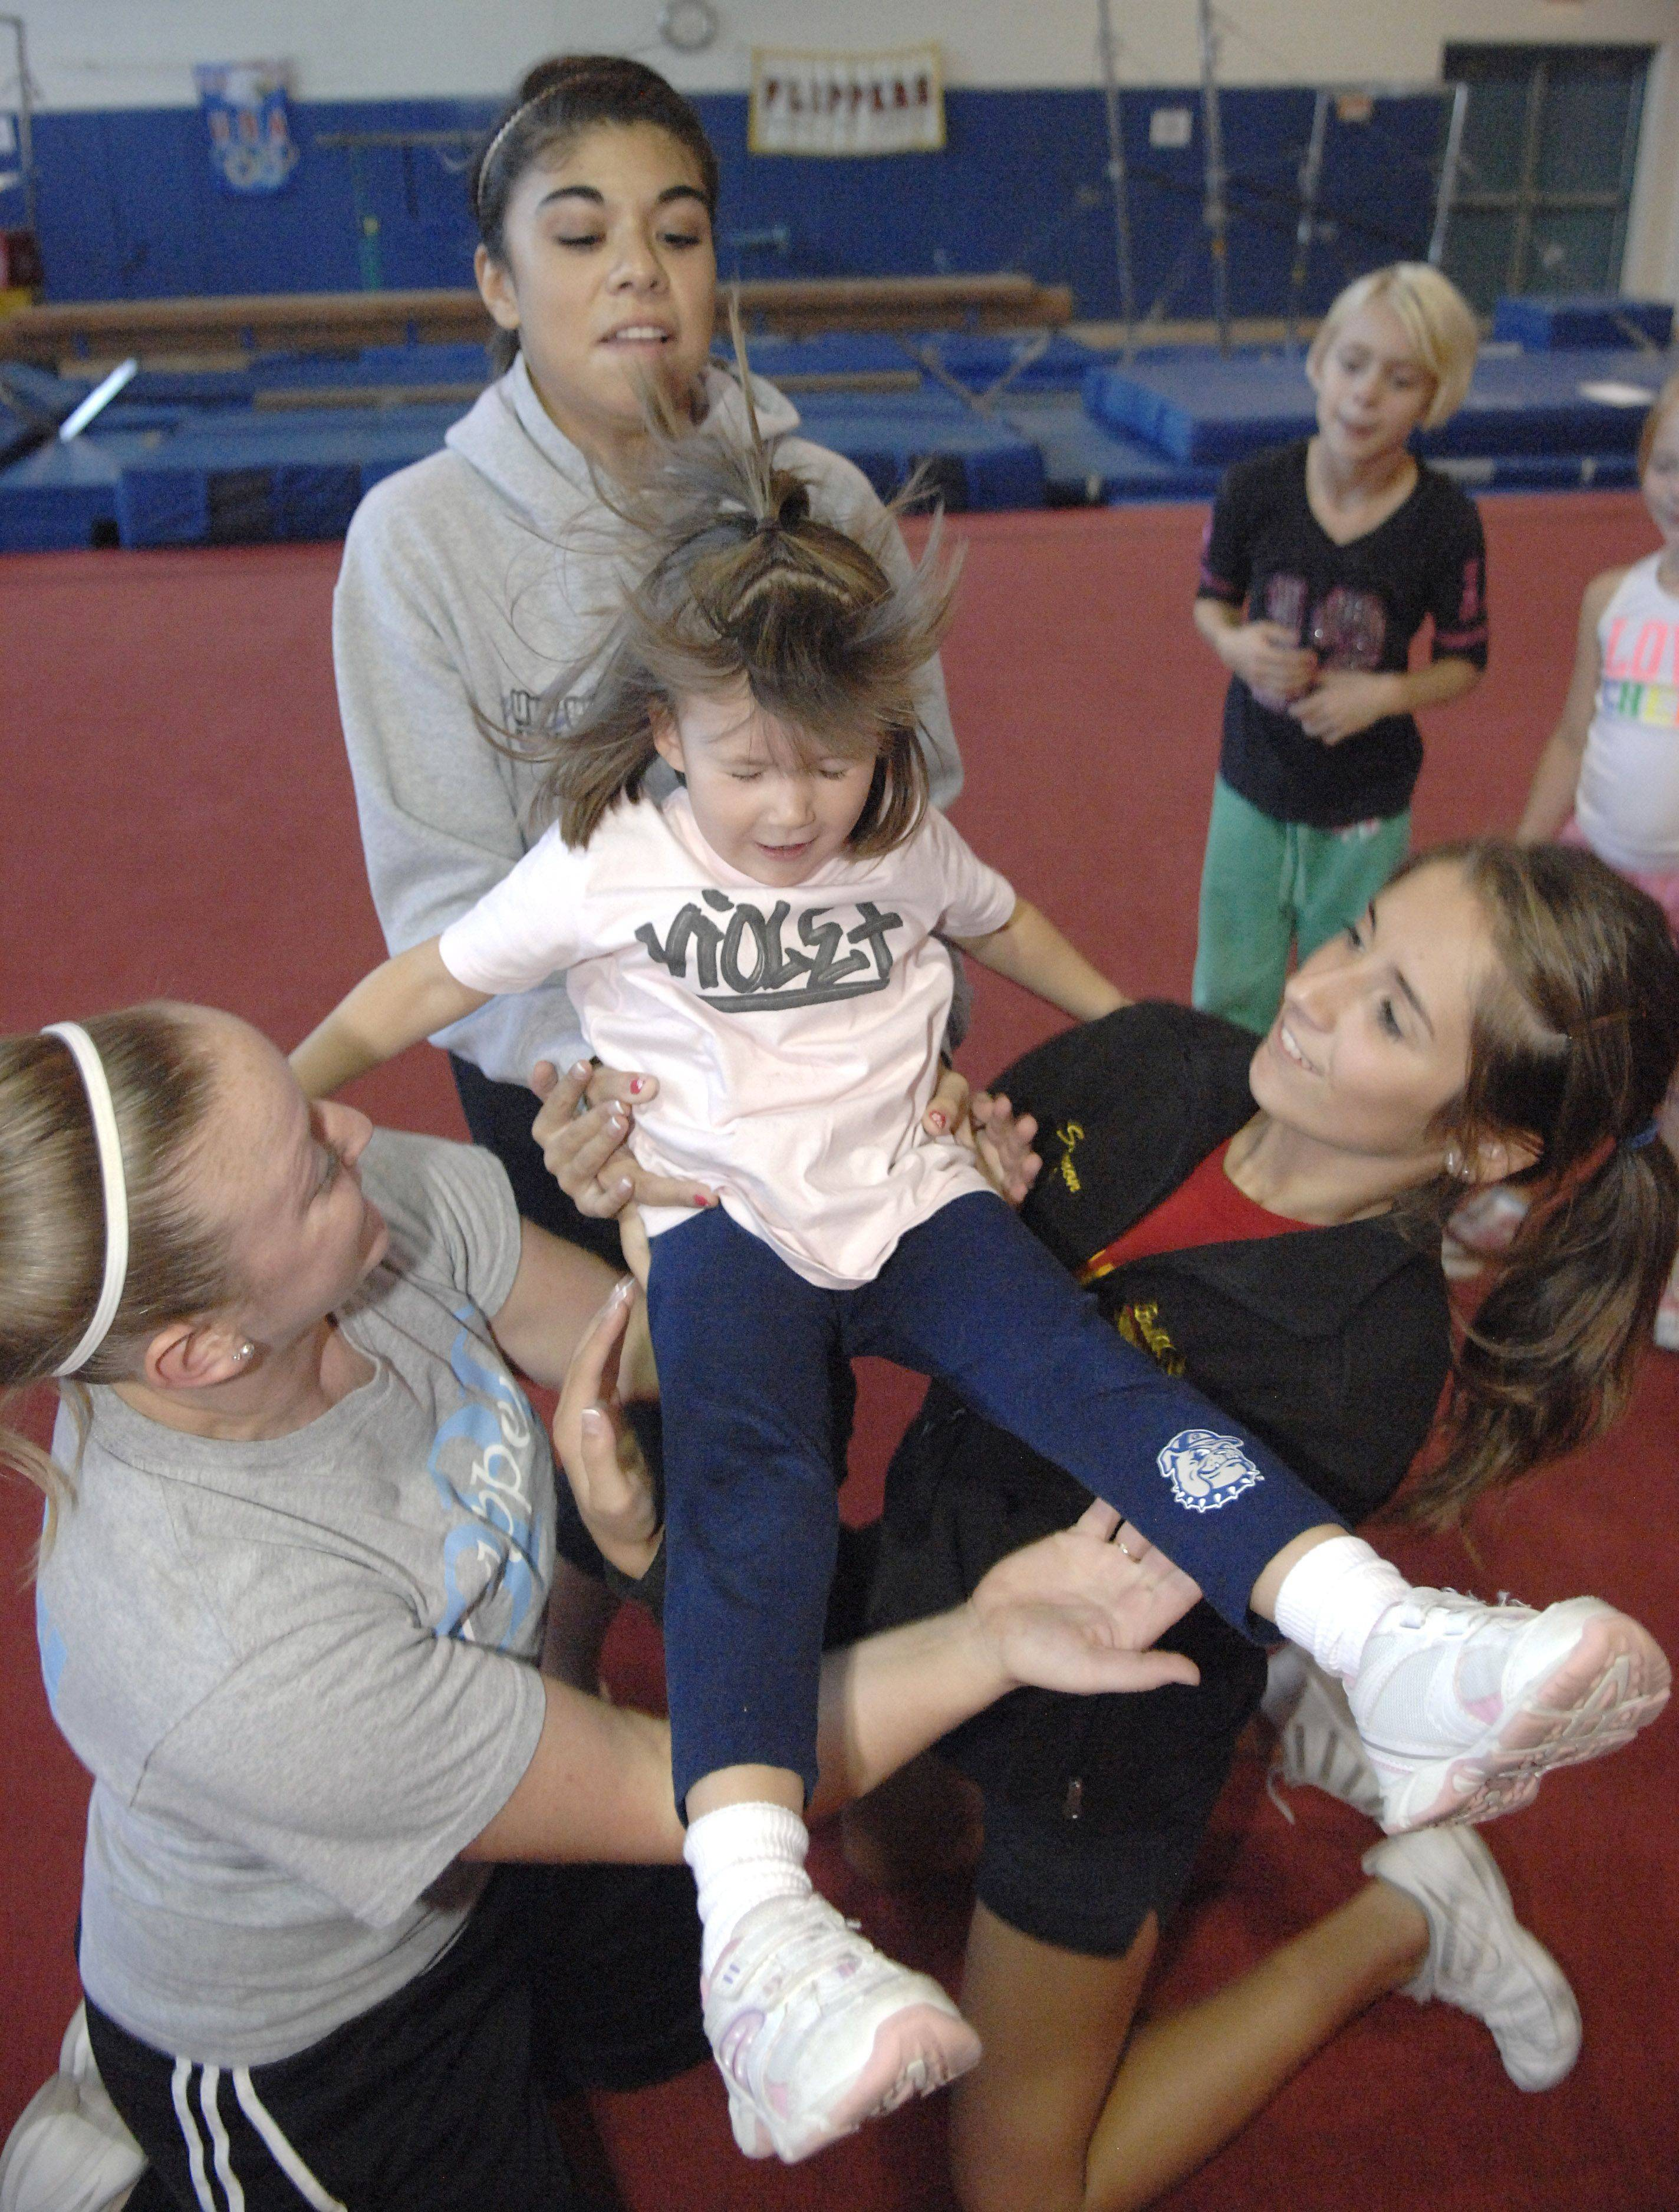 Cheer coaches Bethanne LaFleur, Lilly Garcia and Shannon McGee catch Violet Carlson, 4, of Batavia while doing a pop-up at the Batavia Park District's cheer class for young girls.